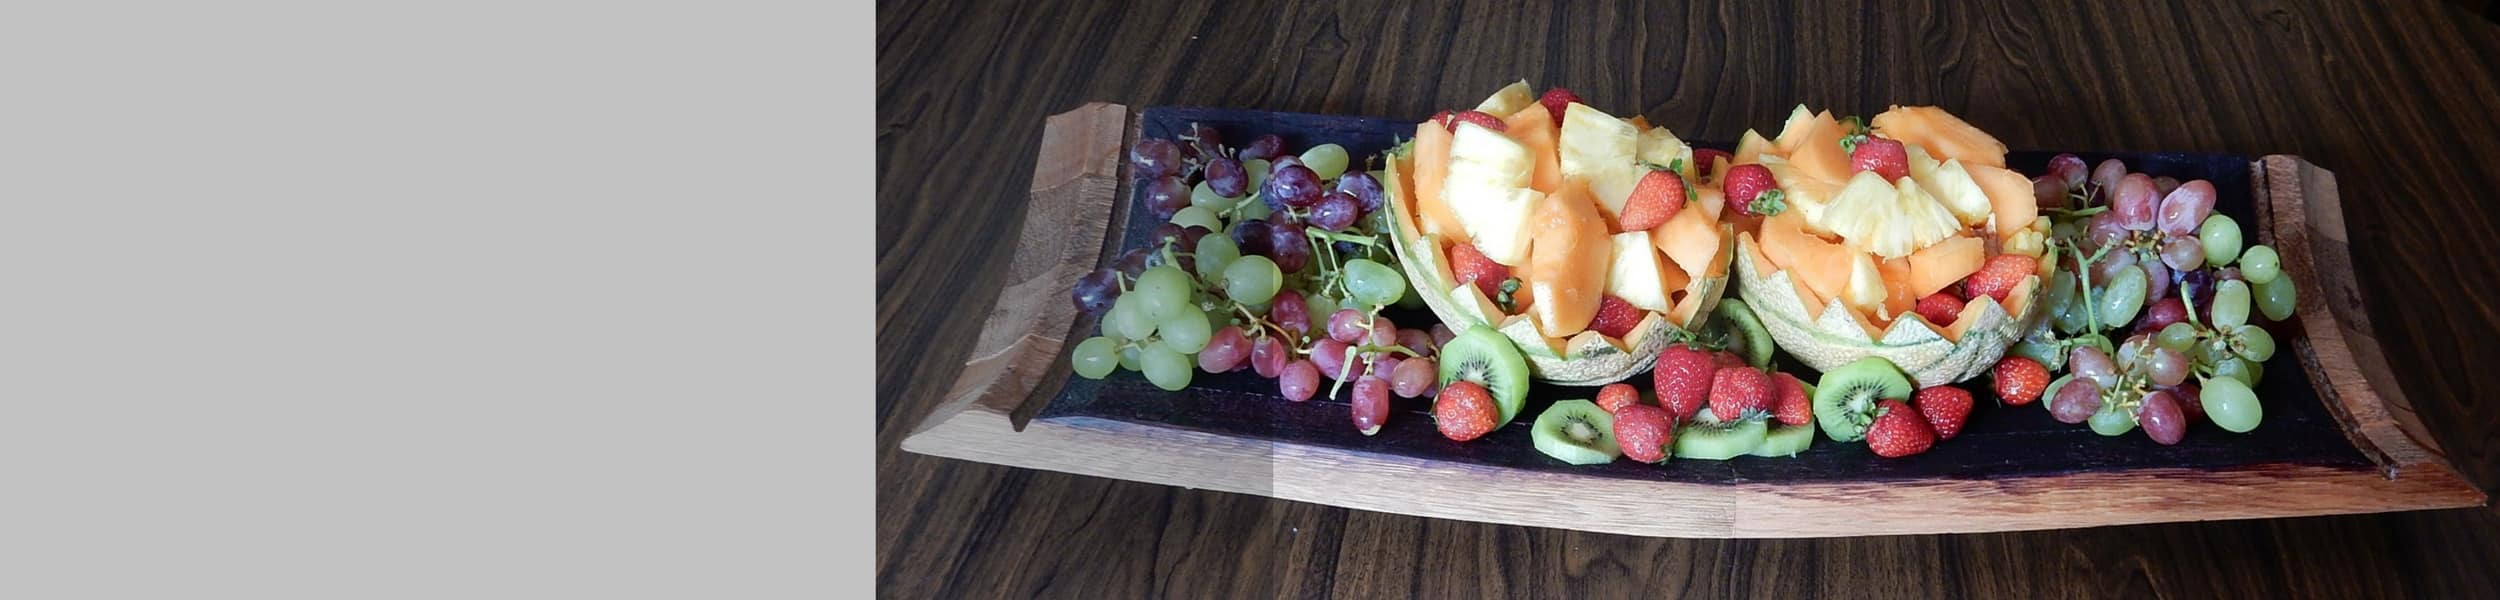 New Products - Wine Barrel Trays